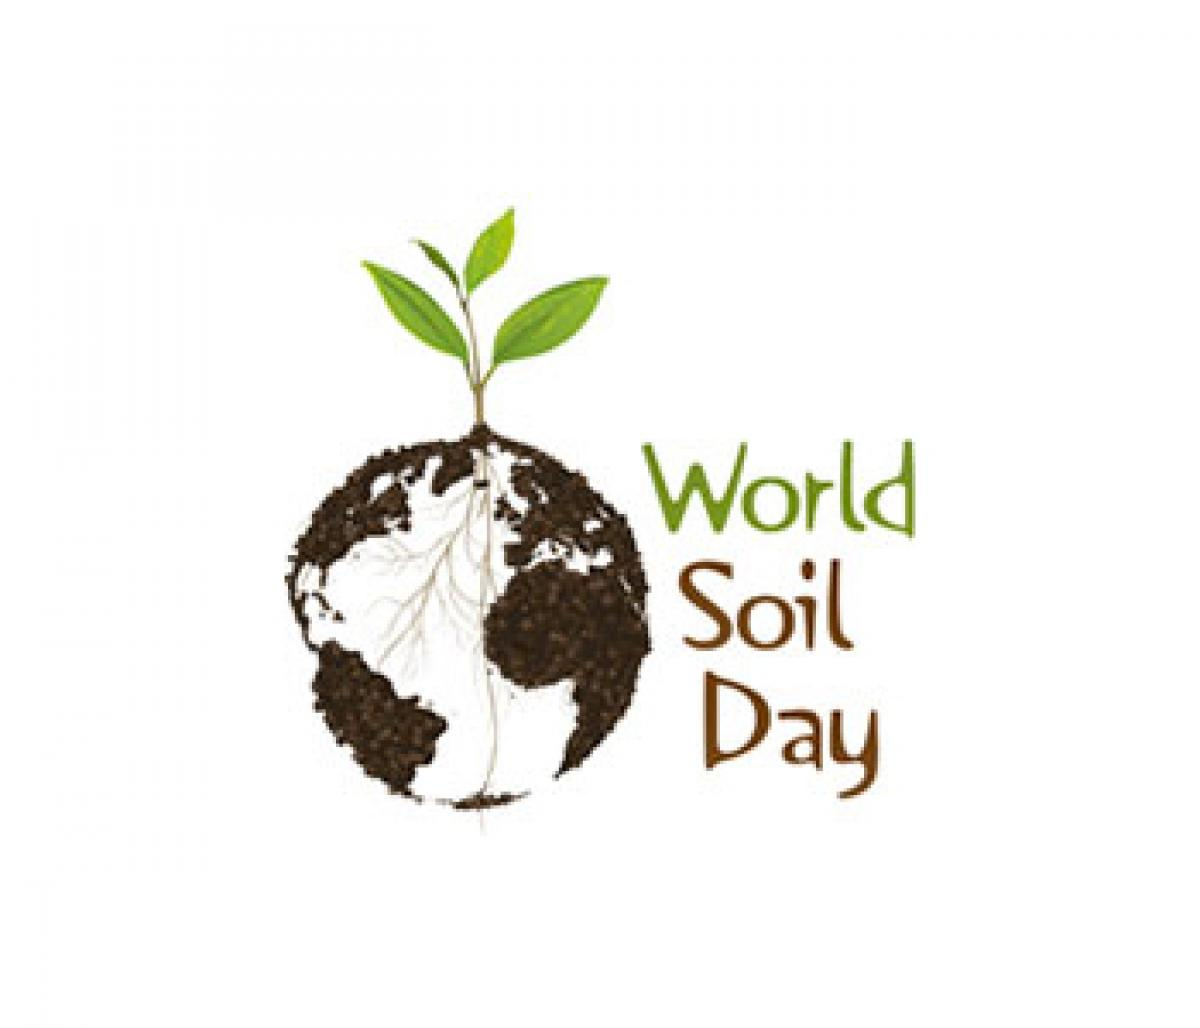 Farmers Advised to test soil World Soil Day